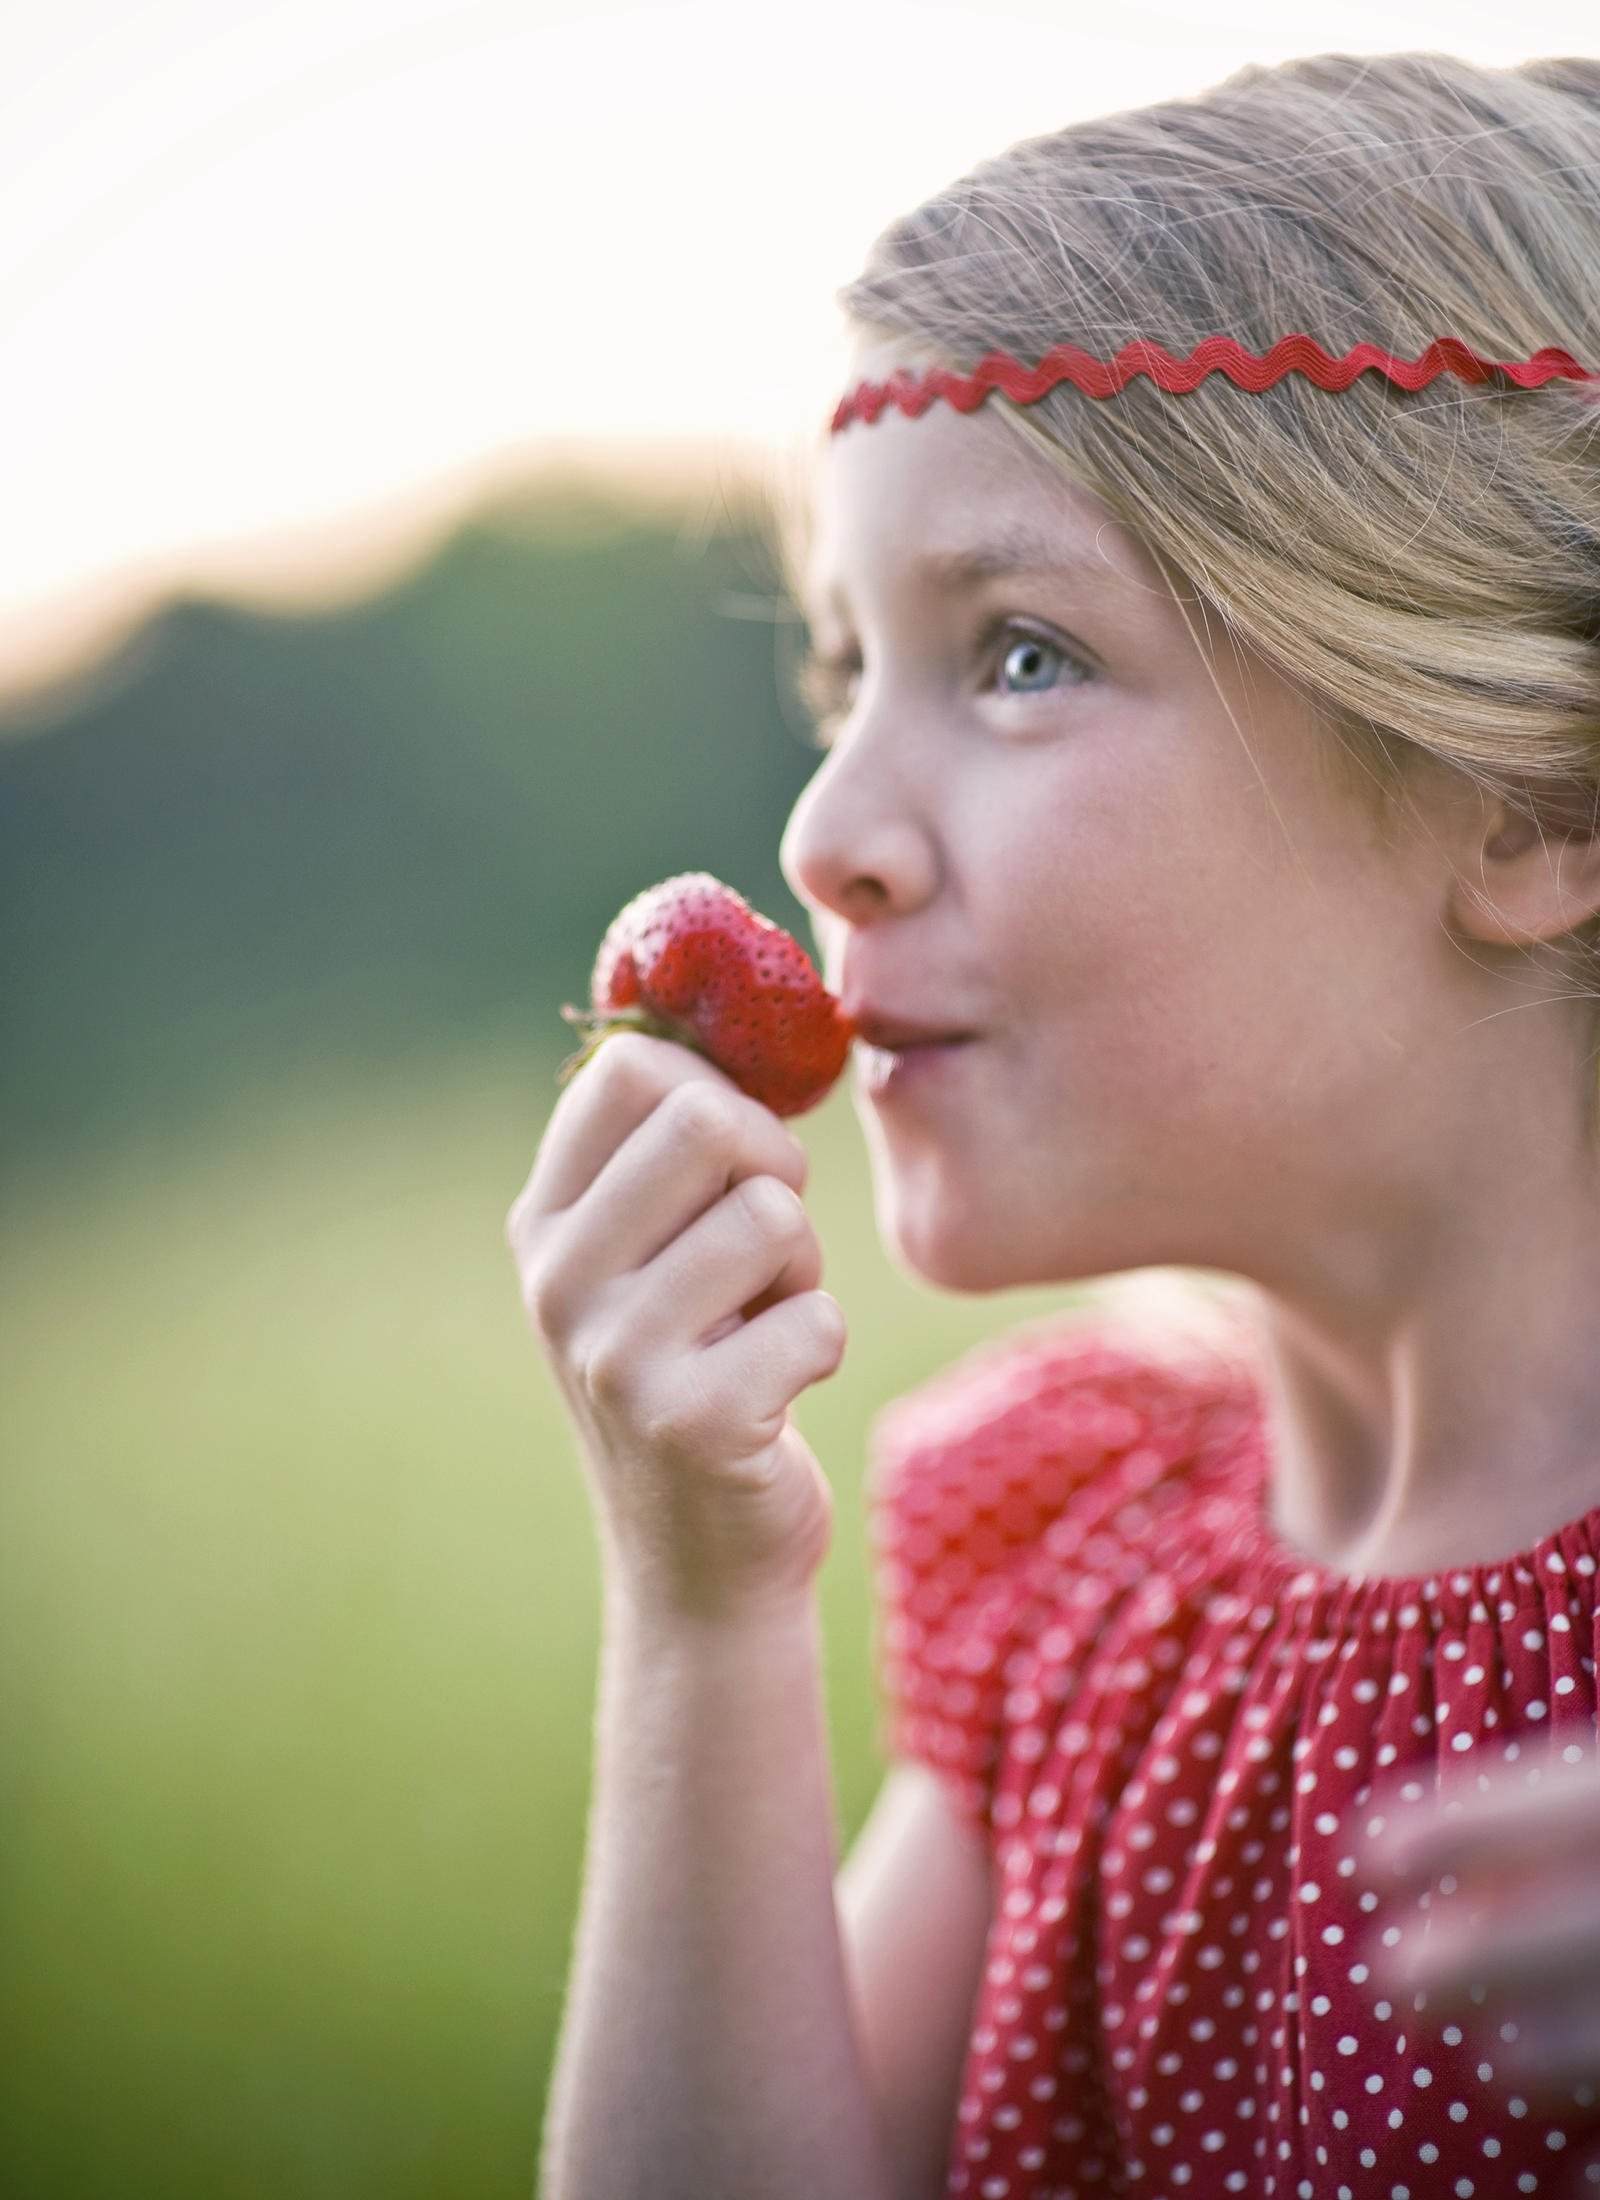 Lifestyle Photography | Atlanta, GA | Profile of a girl in a bright red dress eating a bright red strawberry.